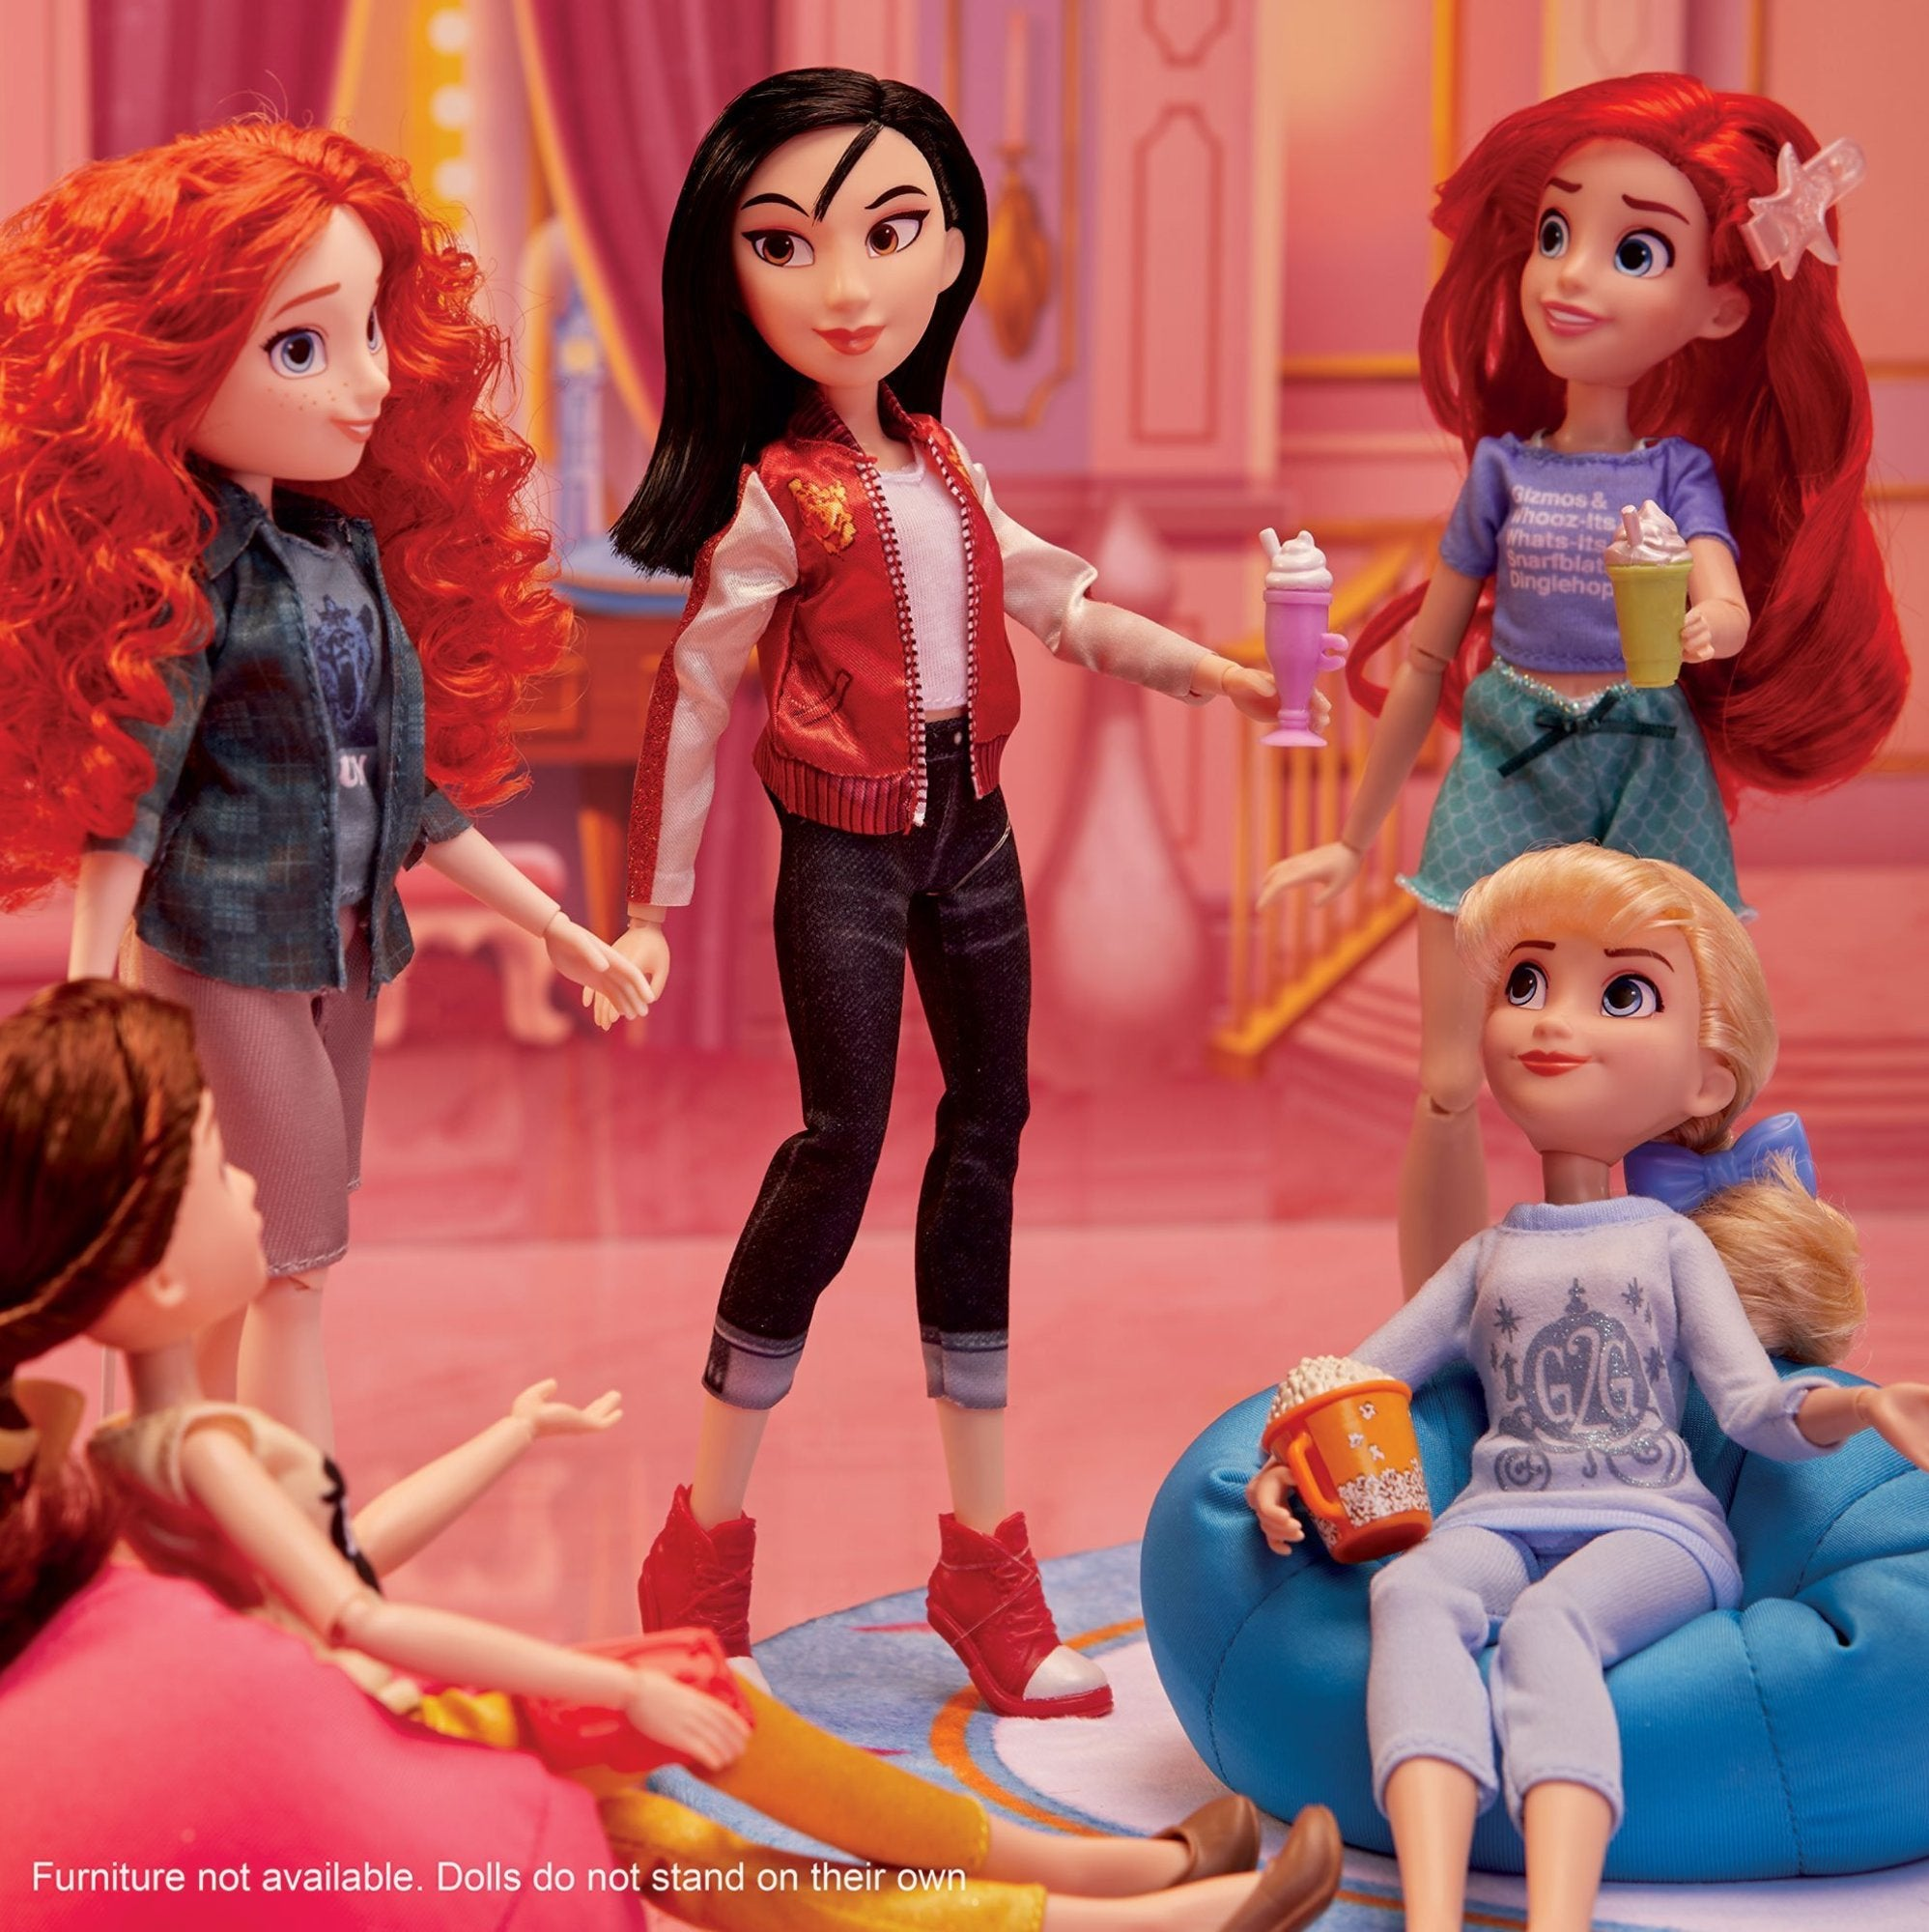 bdfb4f585 Ralph Breaks The Internet Ultimate Fashion Doll Pack – Hasbro Pulse